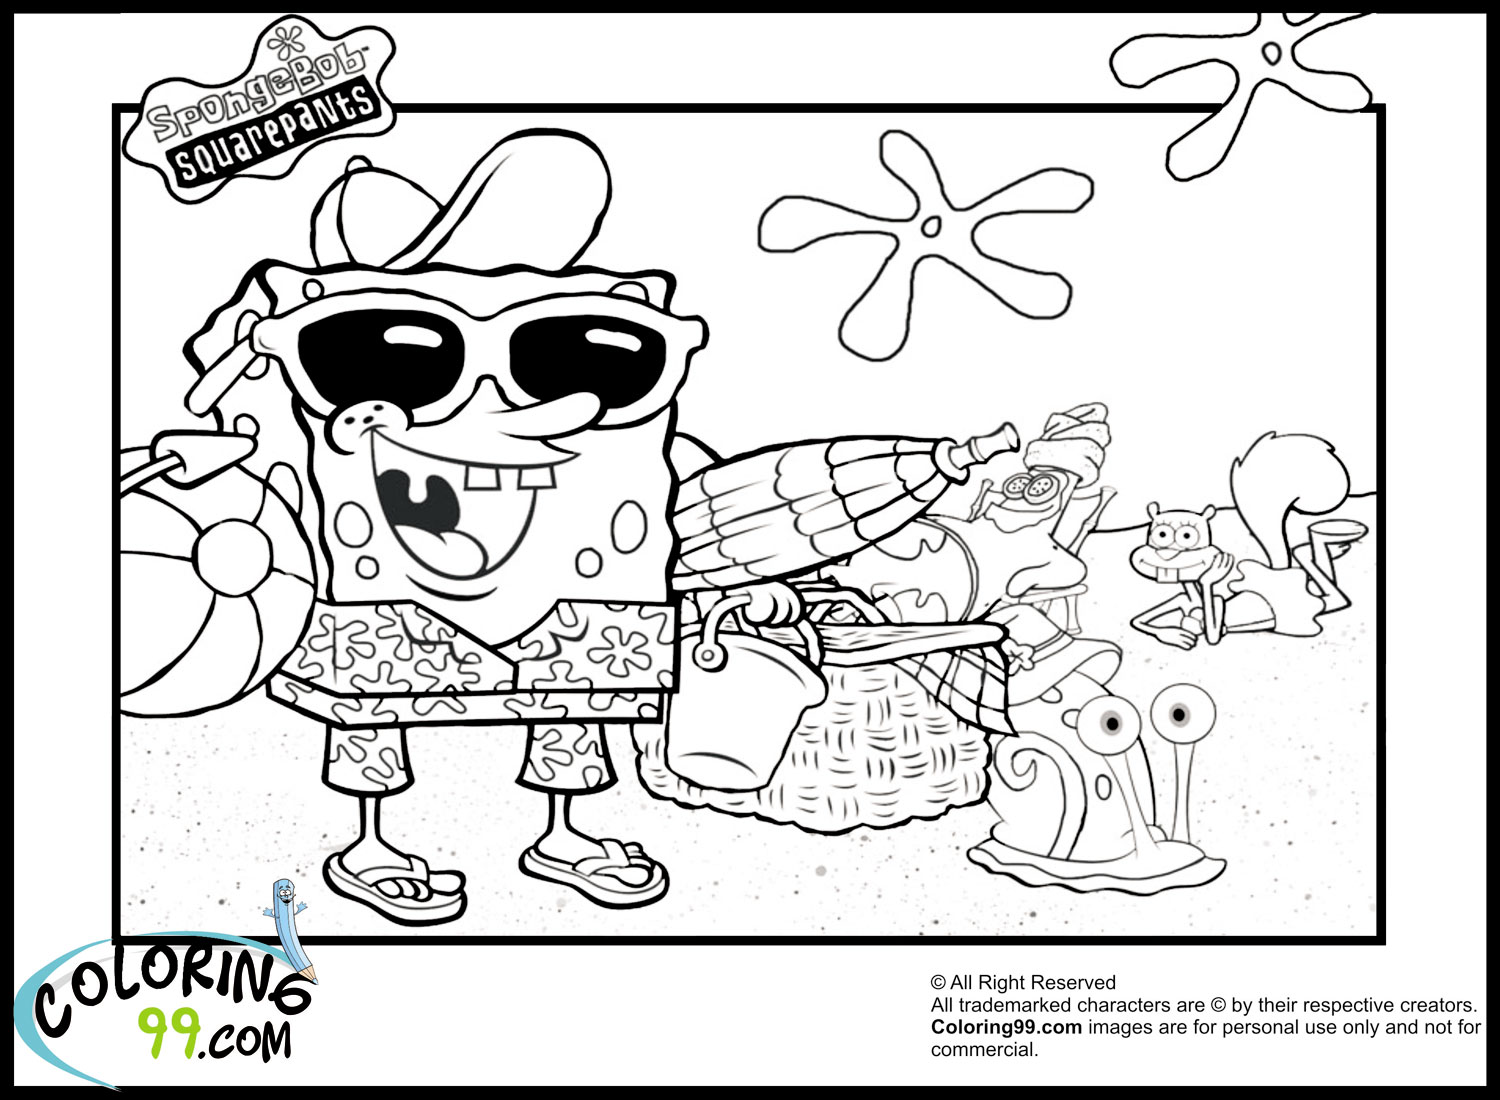 spongebob coloring pages images lego - photo#8